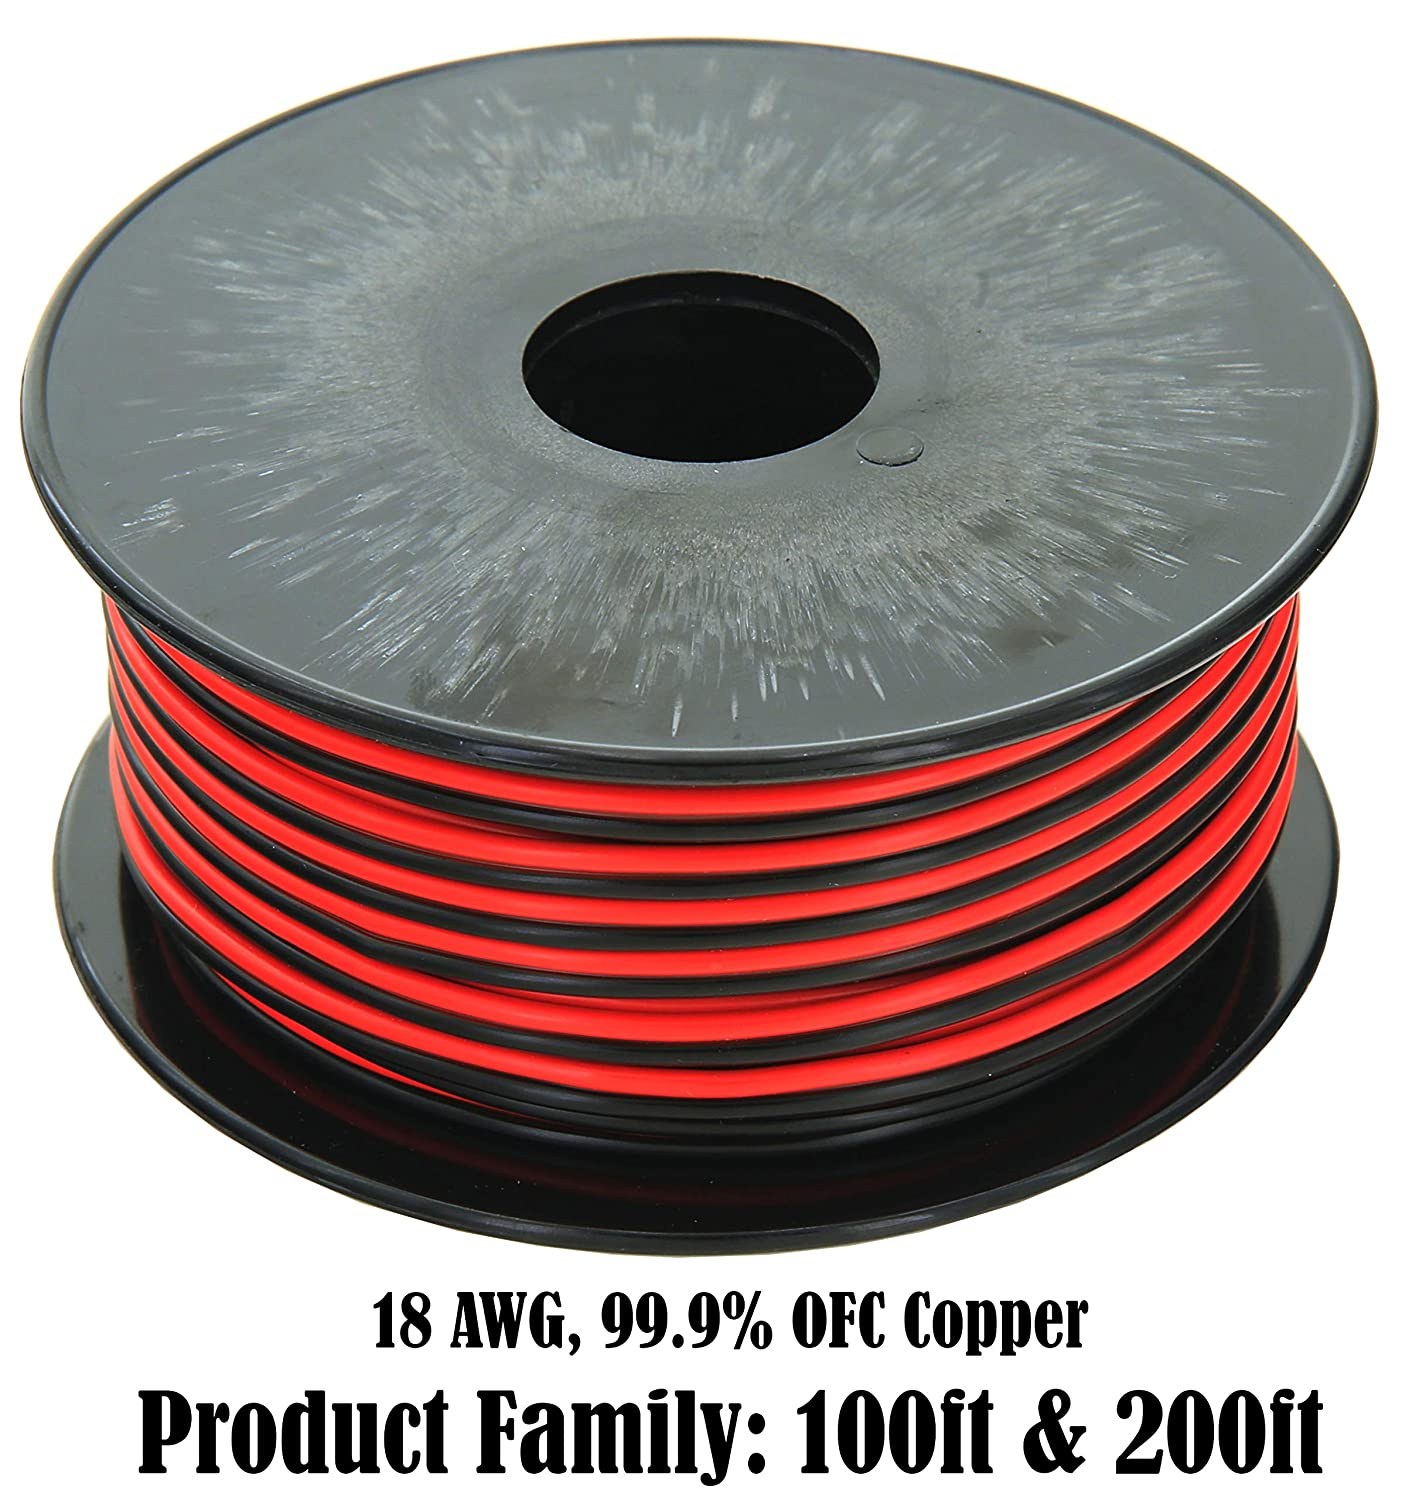 GS Power 18 Gauge (True American Wire Ga), 99.9% Stranded Oxygen Free Copper OFC Red Black Bonded Zip Cord Speaker Cable for Car Audio Radio Home Stereo Wiring (Option: 100 ft or 200 ft roll)